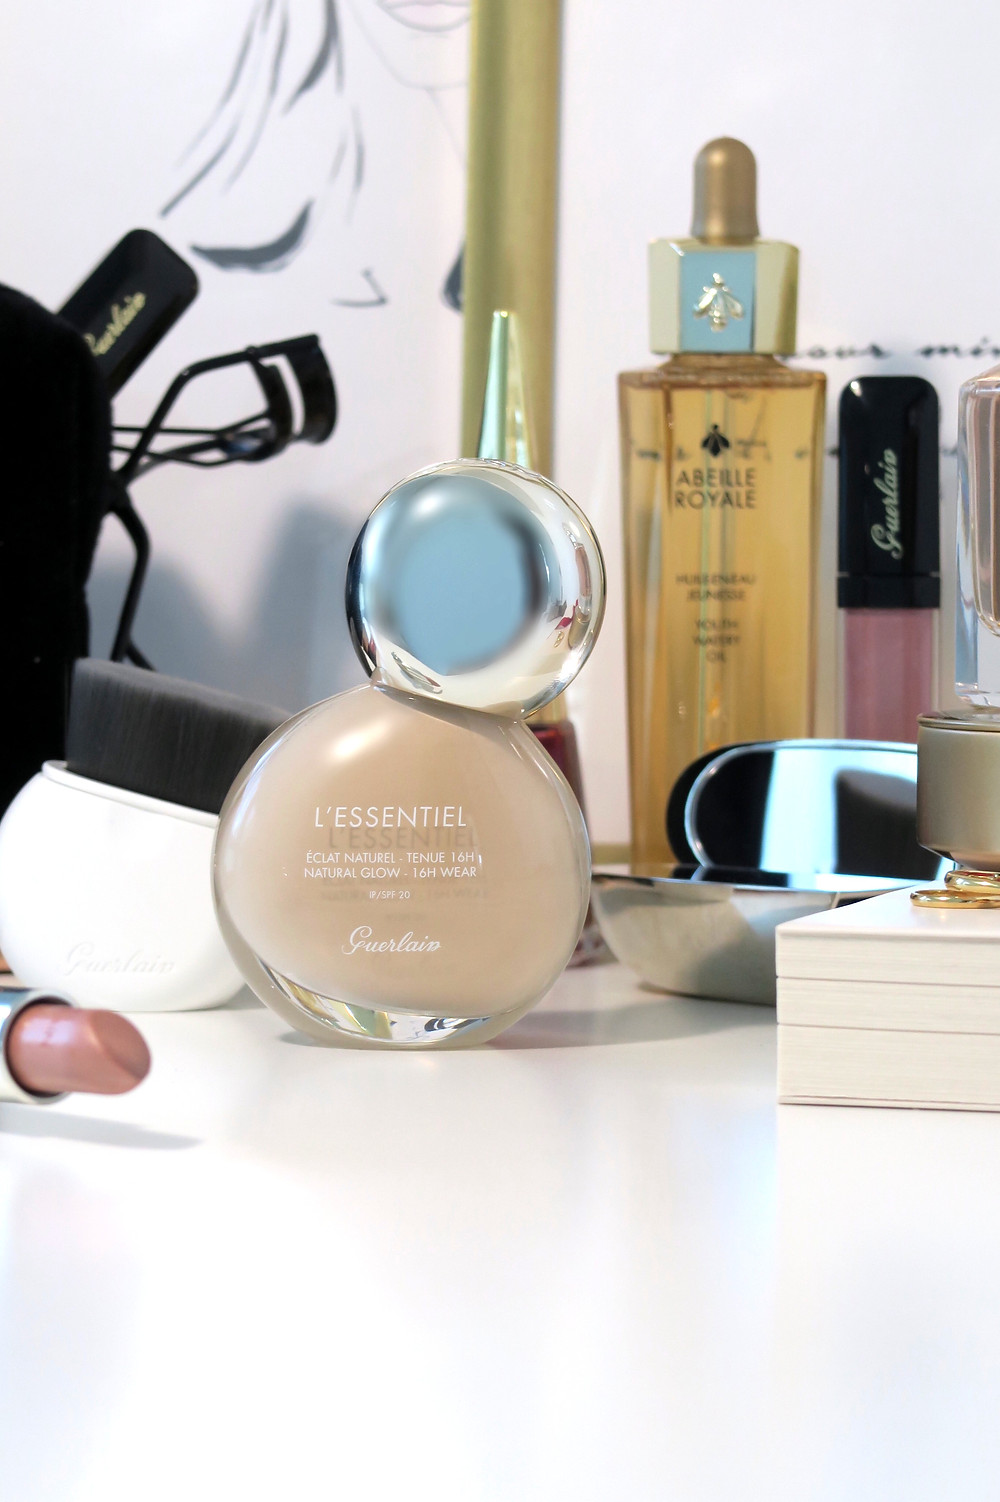 guerlain léssentiel foundation review